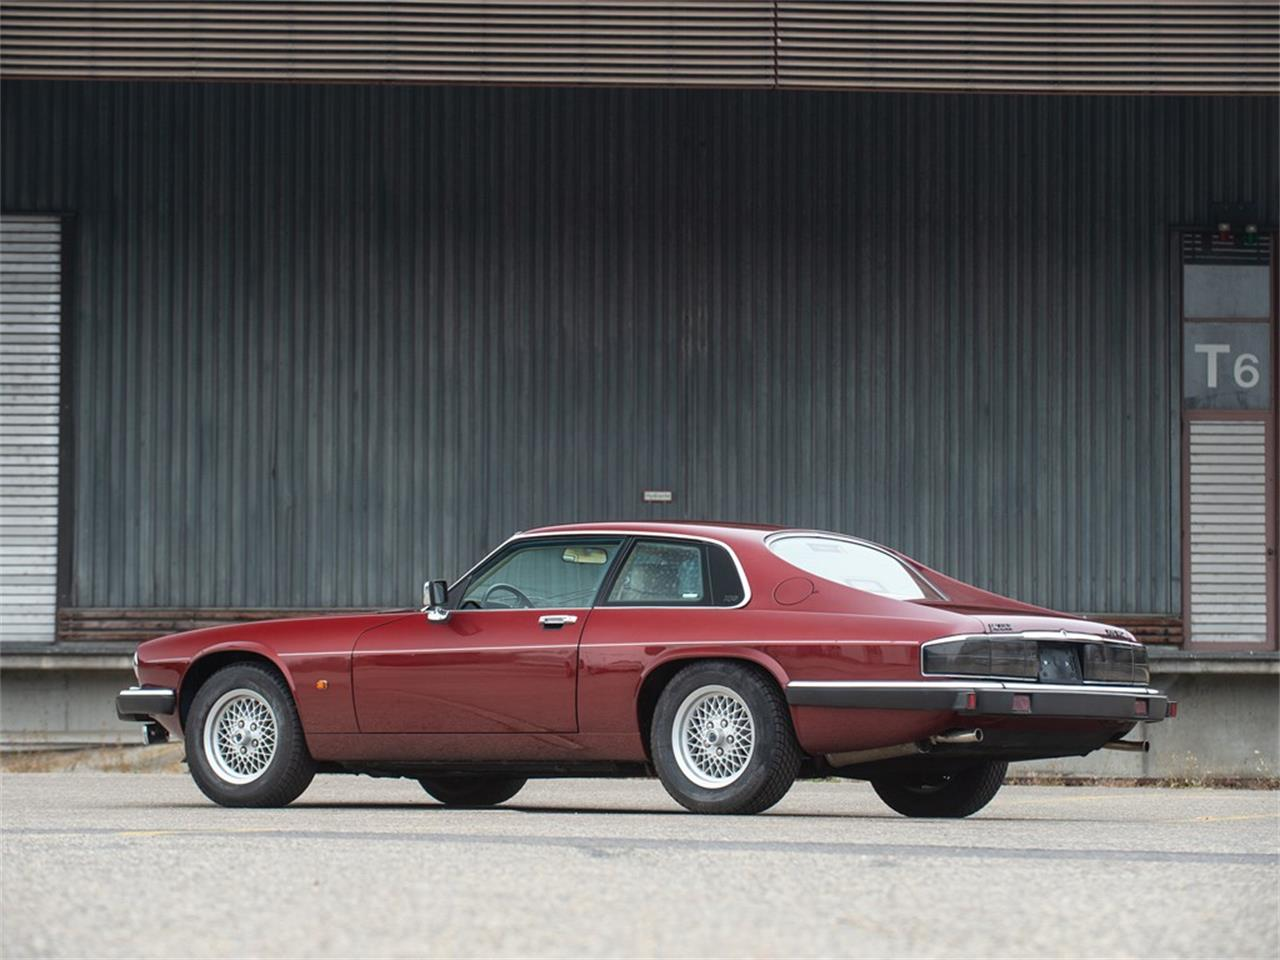 1991 Jaguar XJS for sale in Essen, Other – photo 2